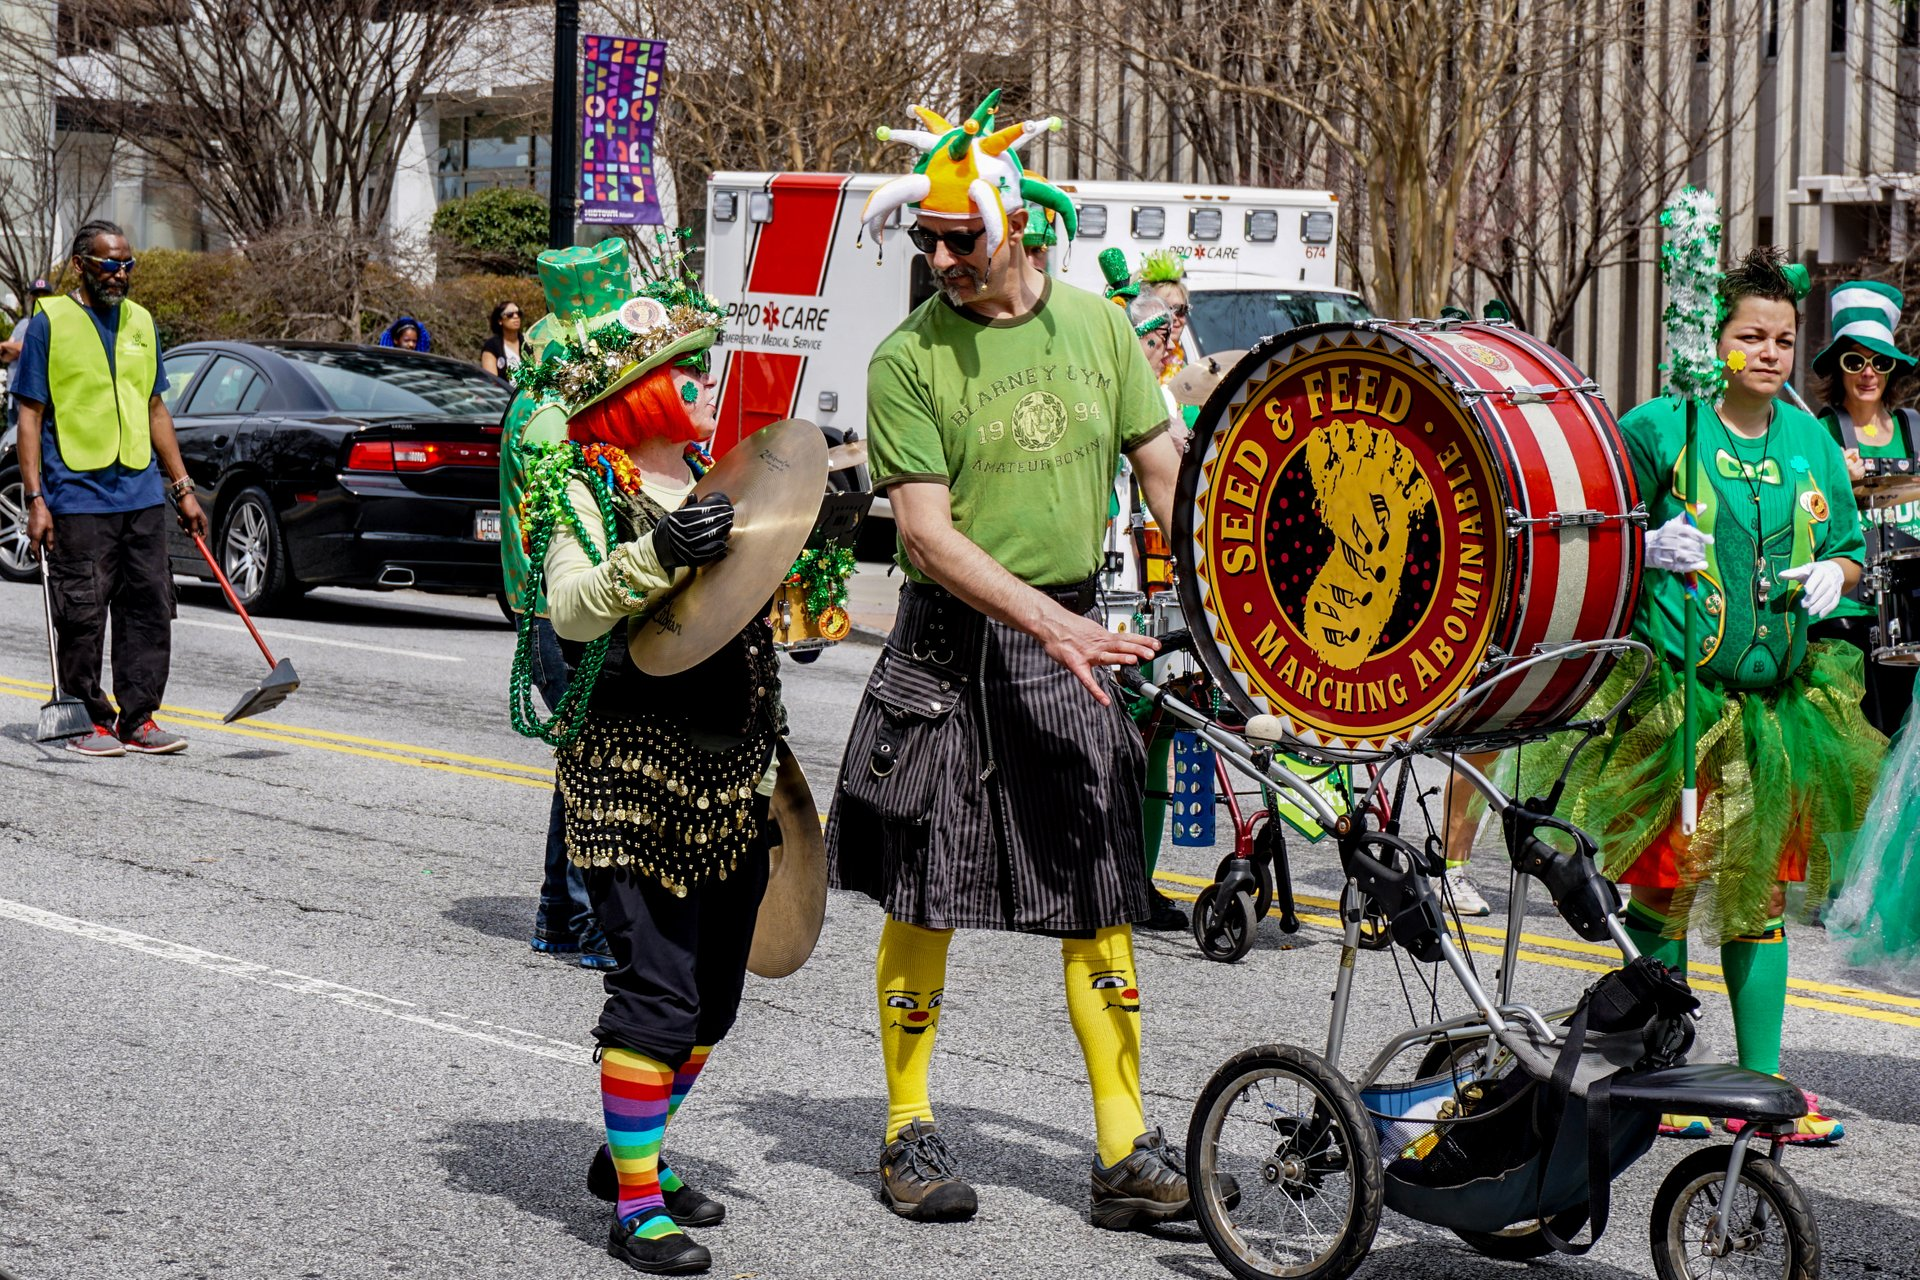 Best time for Atlanta St. Patrick's Parade 2020